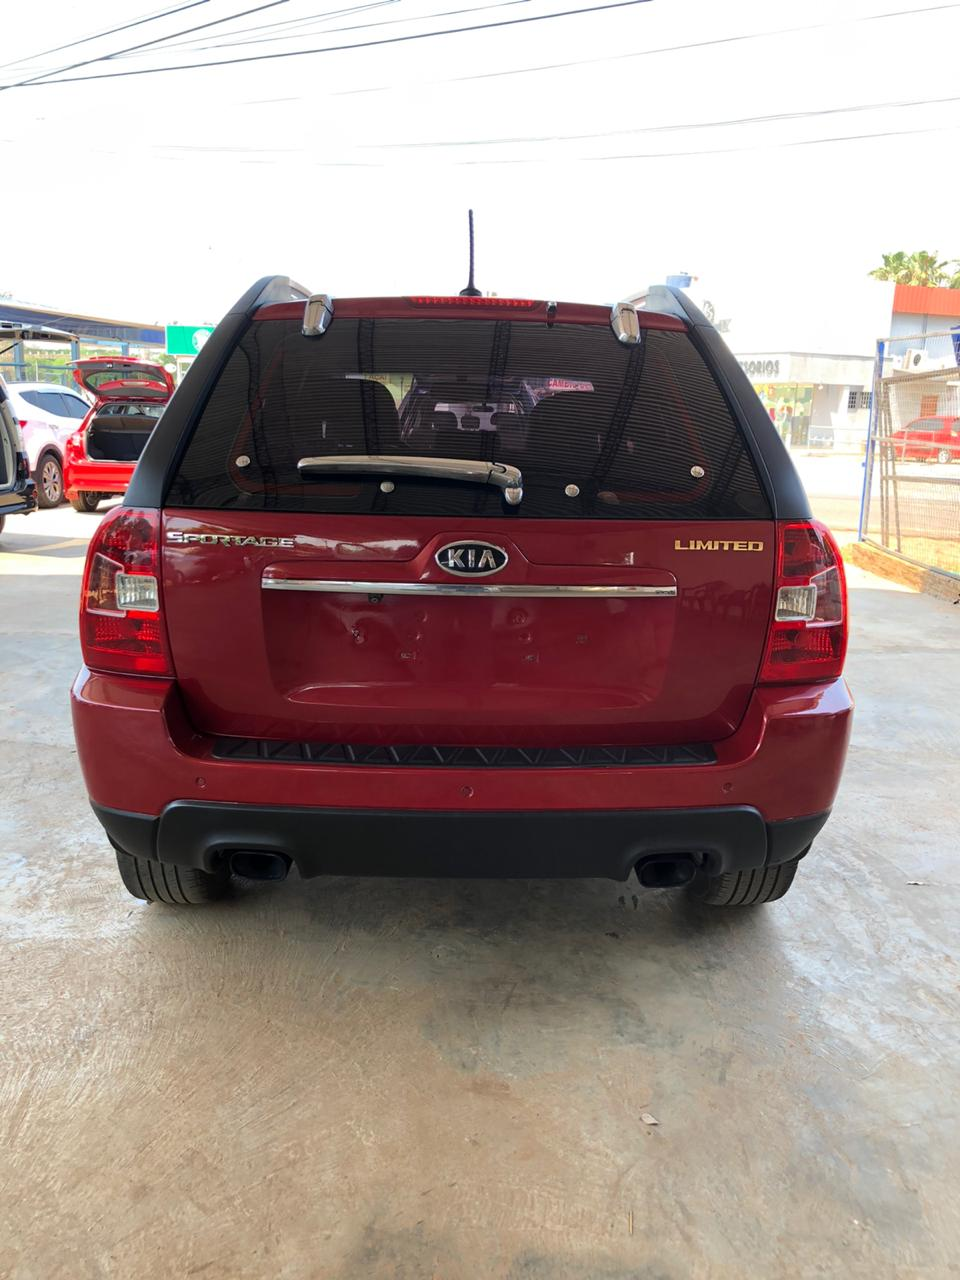 KIA SPORTAGE COLOR BORDO 2009